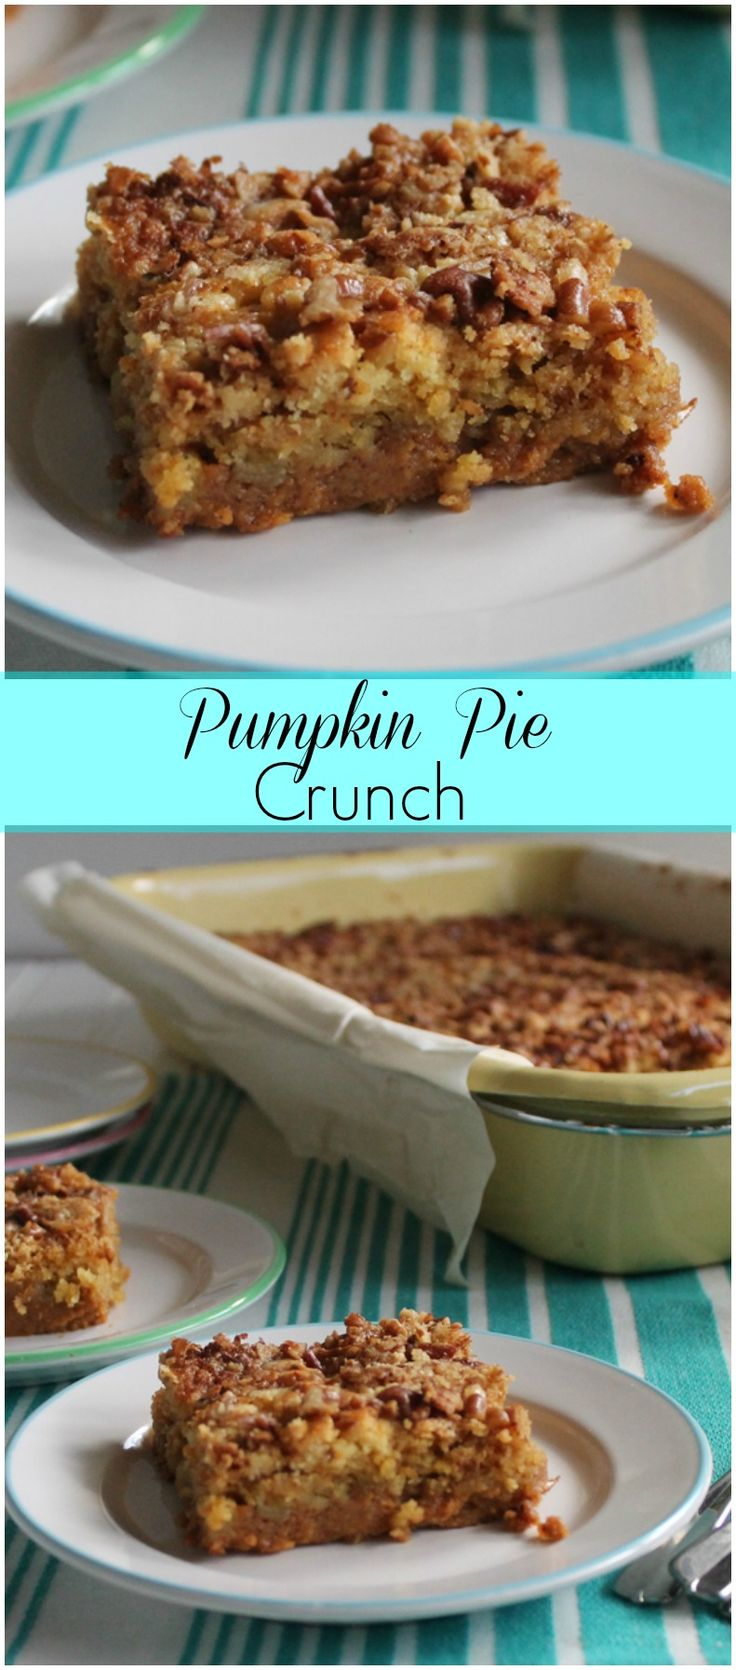 Pumpkin Pie Crunch-a perfect balance between pumpkin and my favorite sweet potato soufflé topping!